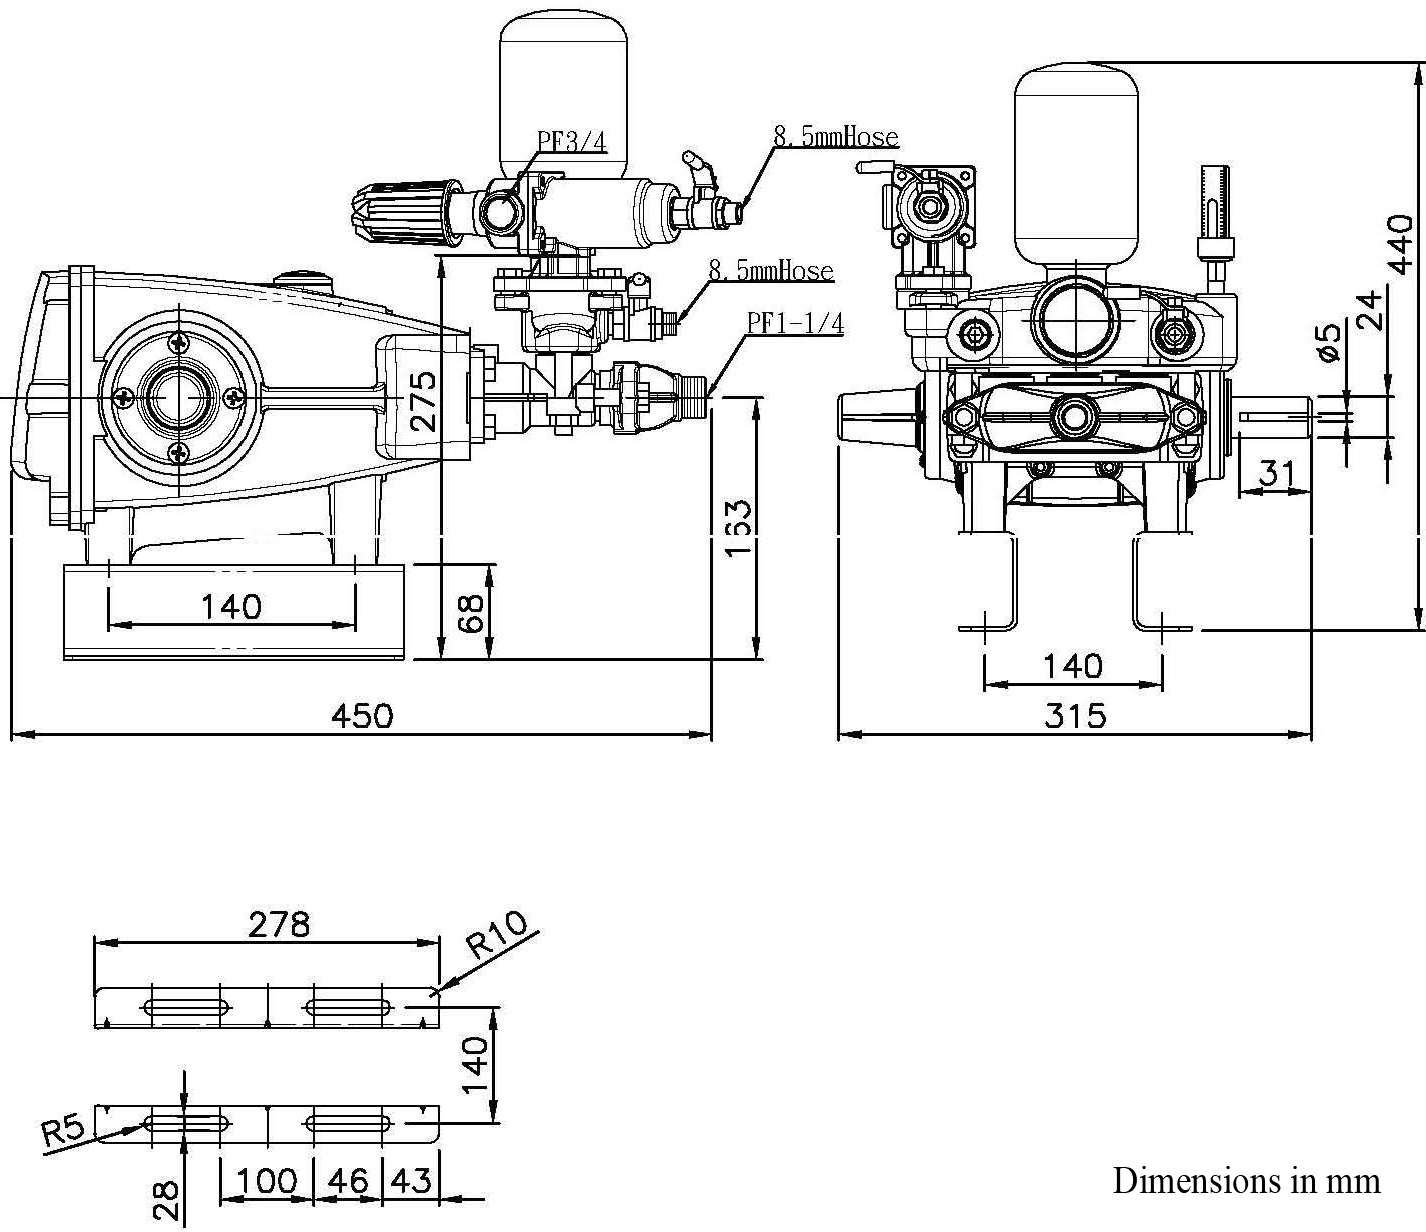 proimages/product/POWER_SPRAYER/dimensions/WL-51AS.jpg